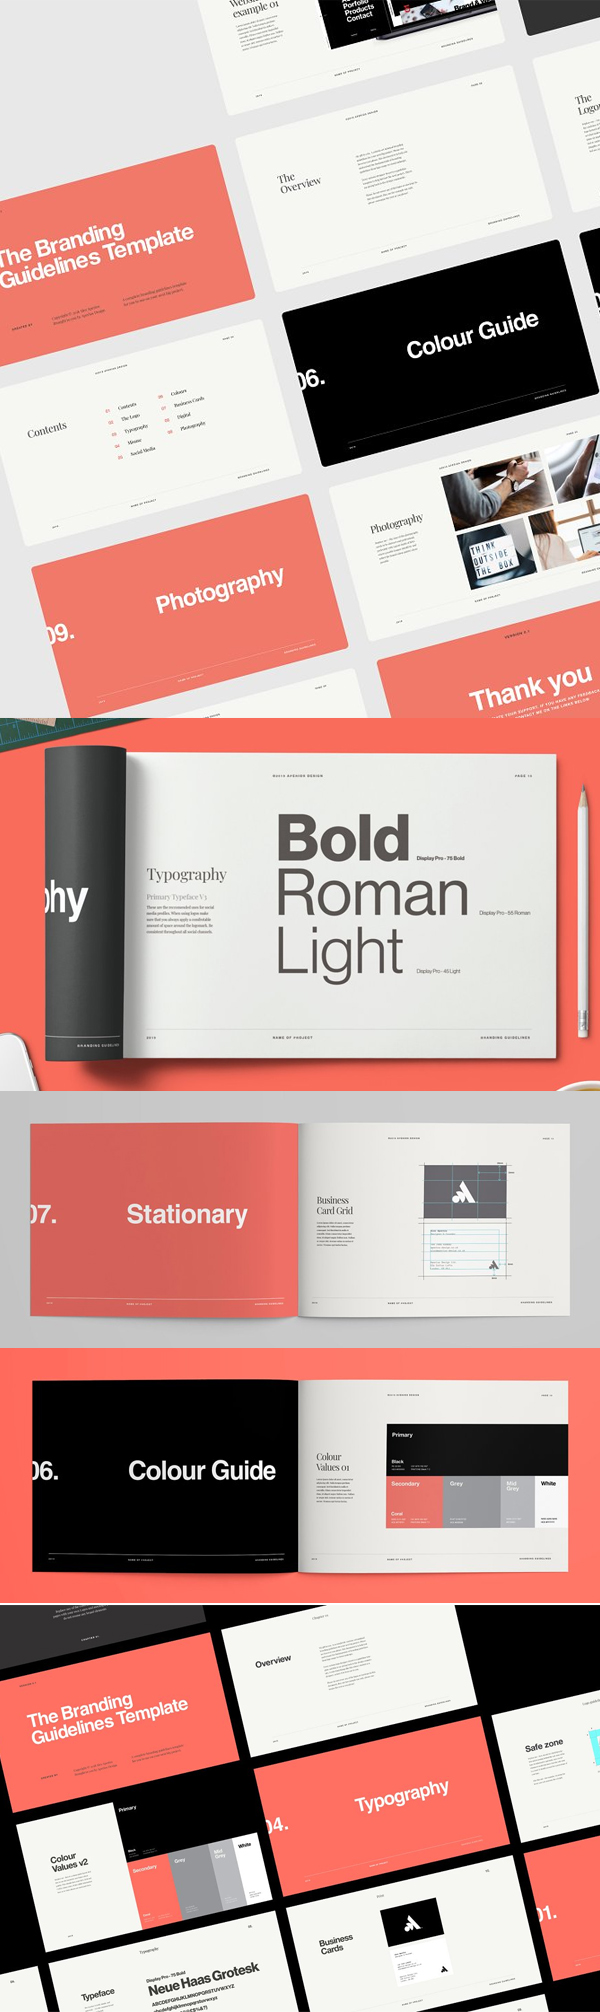 Minimal Brand Guidelines Template